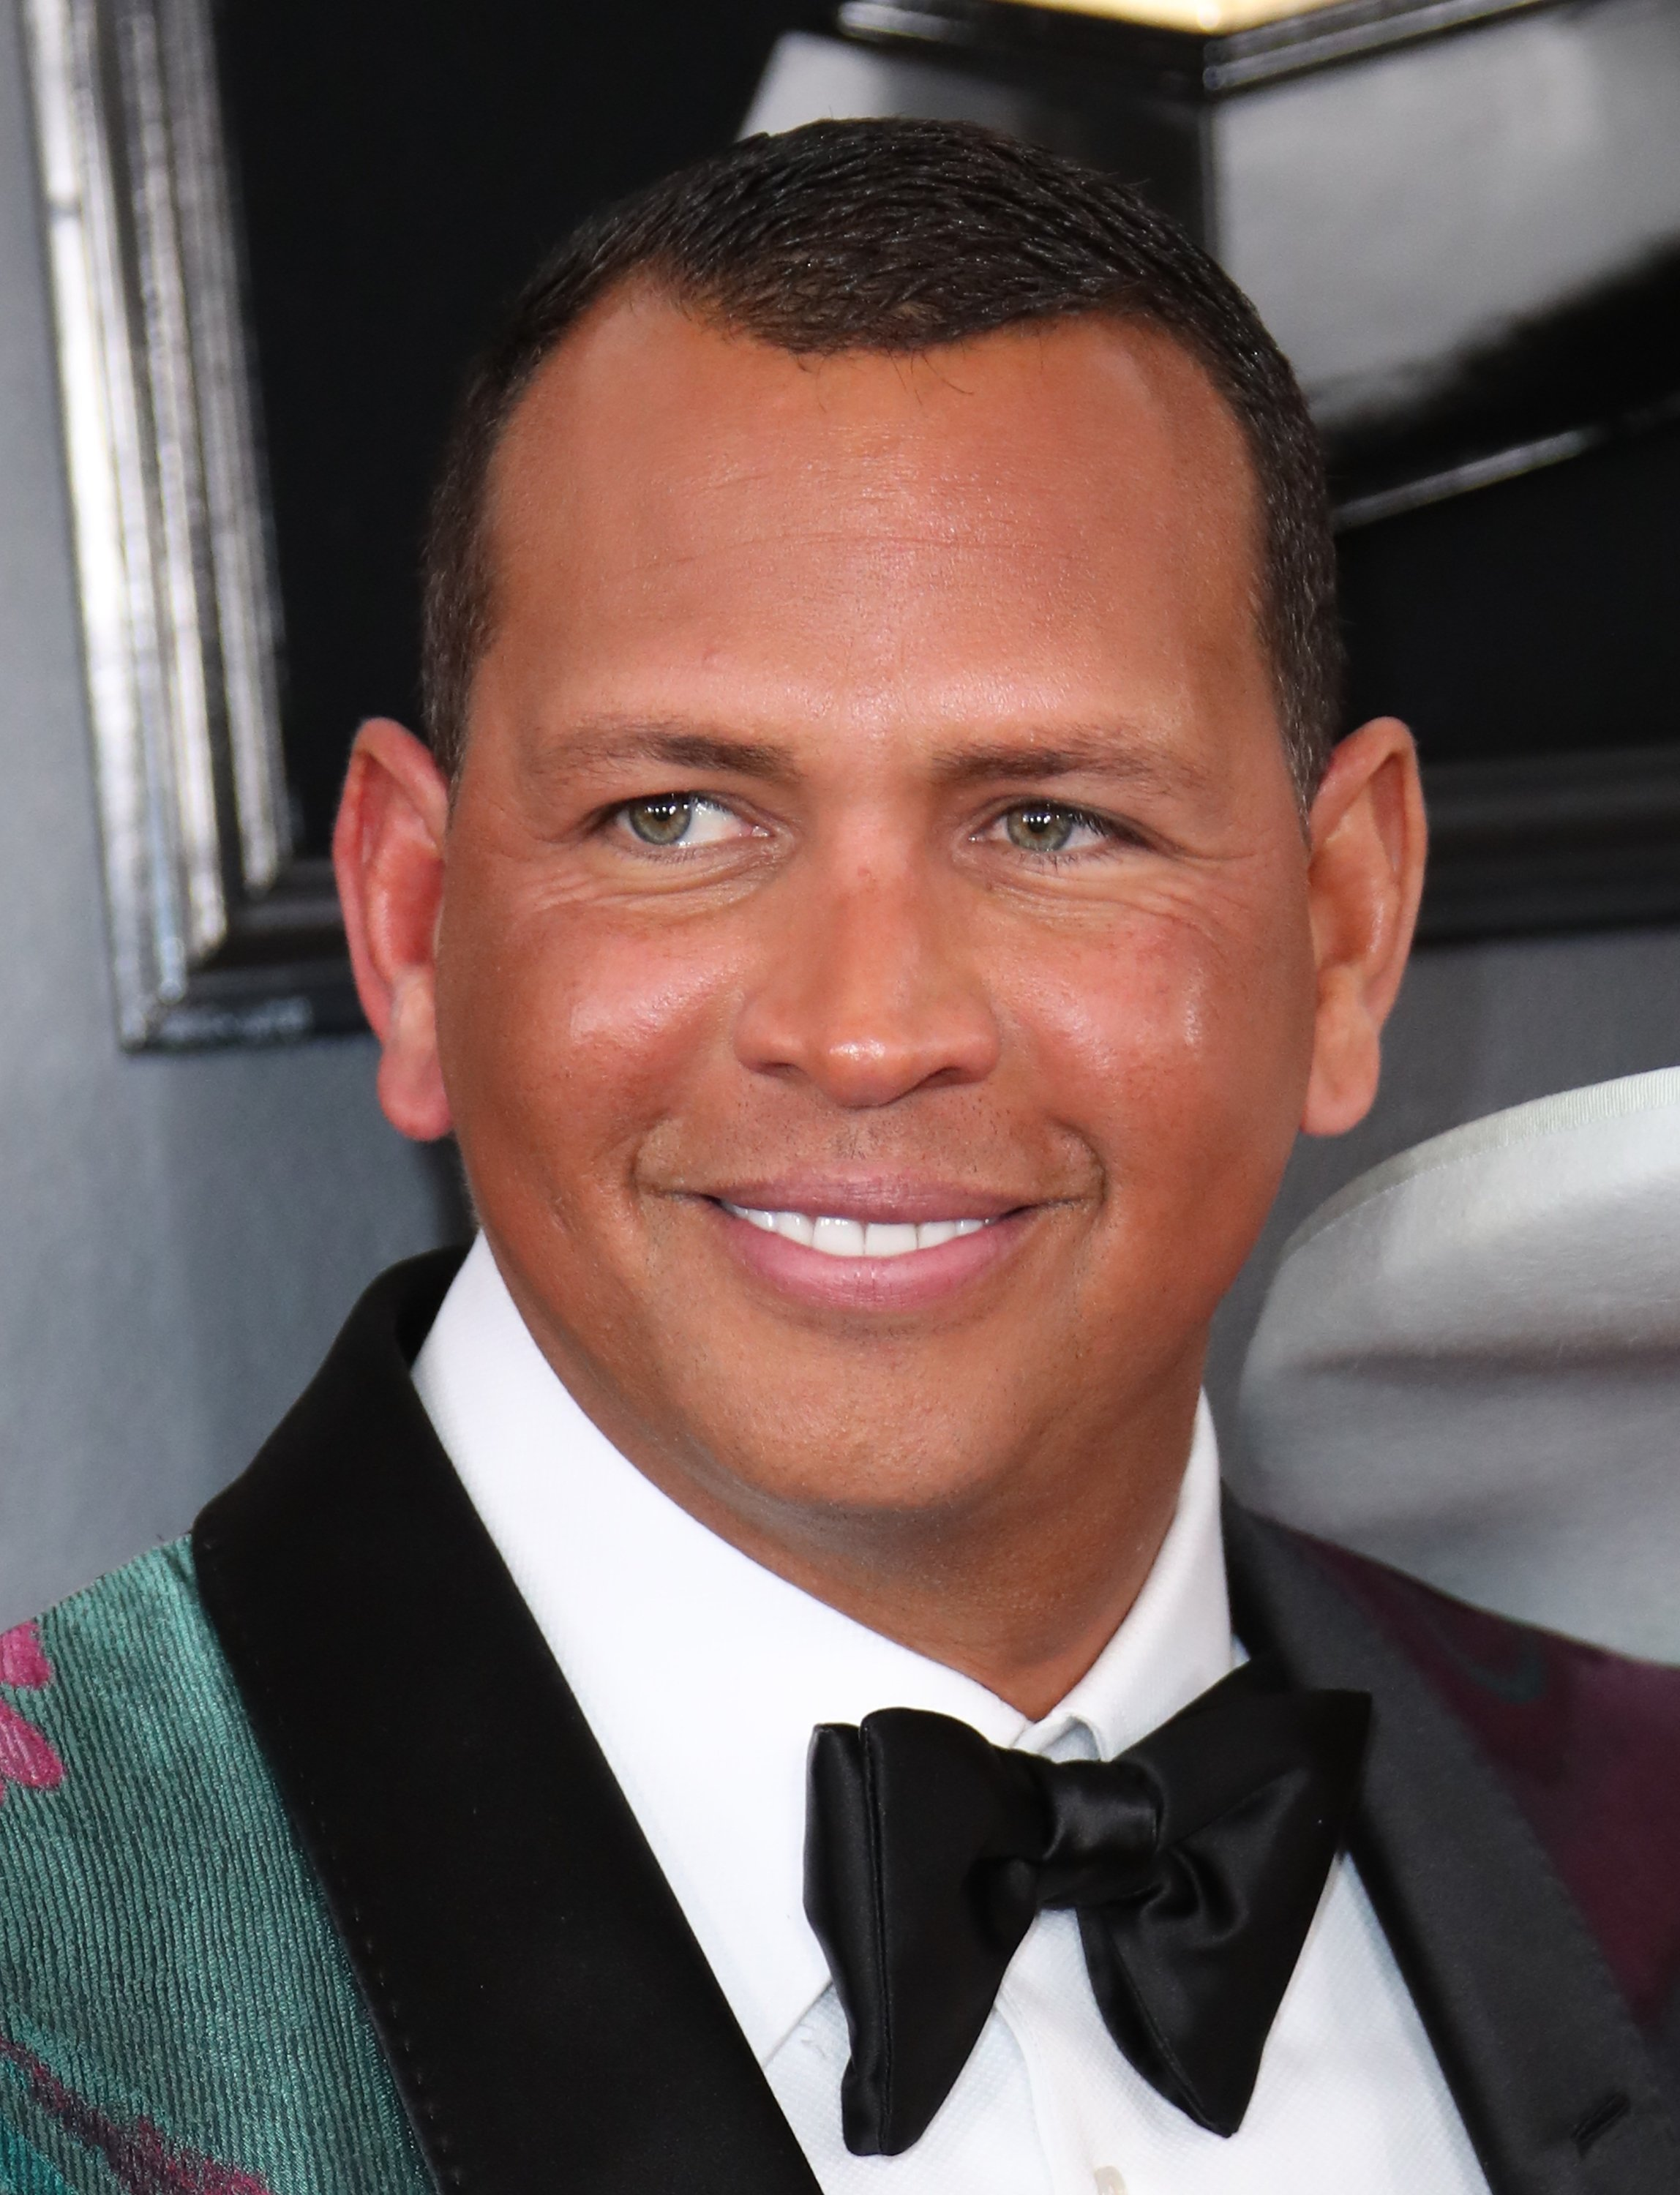 Alex Rodriguez at the 61st Annual GRAMMY Awards at Staples Center on February 10, 2019 in Los Angeles, California | Photo: Getty Images